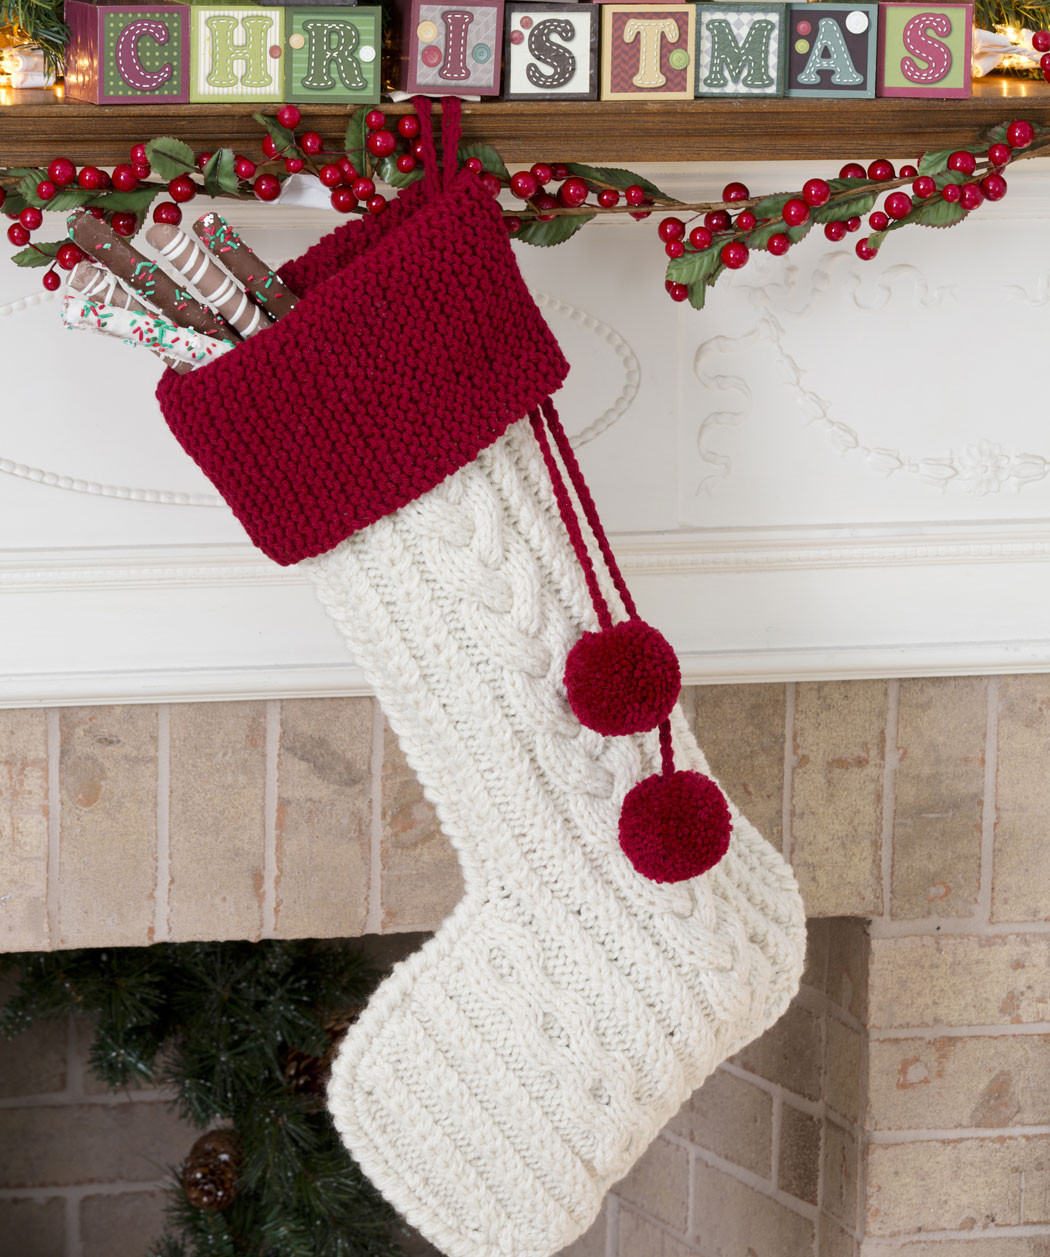 Luxury Knitted Christmas Stocking Patterns Xmas Stocking Patterns Of Marvelous 47 Images Xmas Stocking Patterns